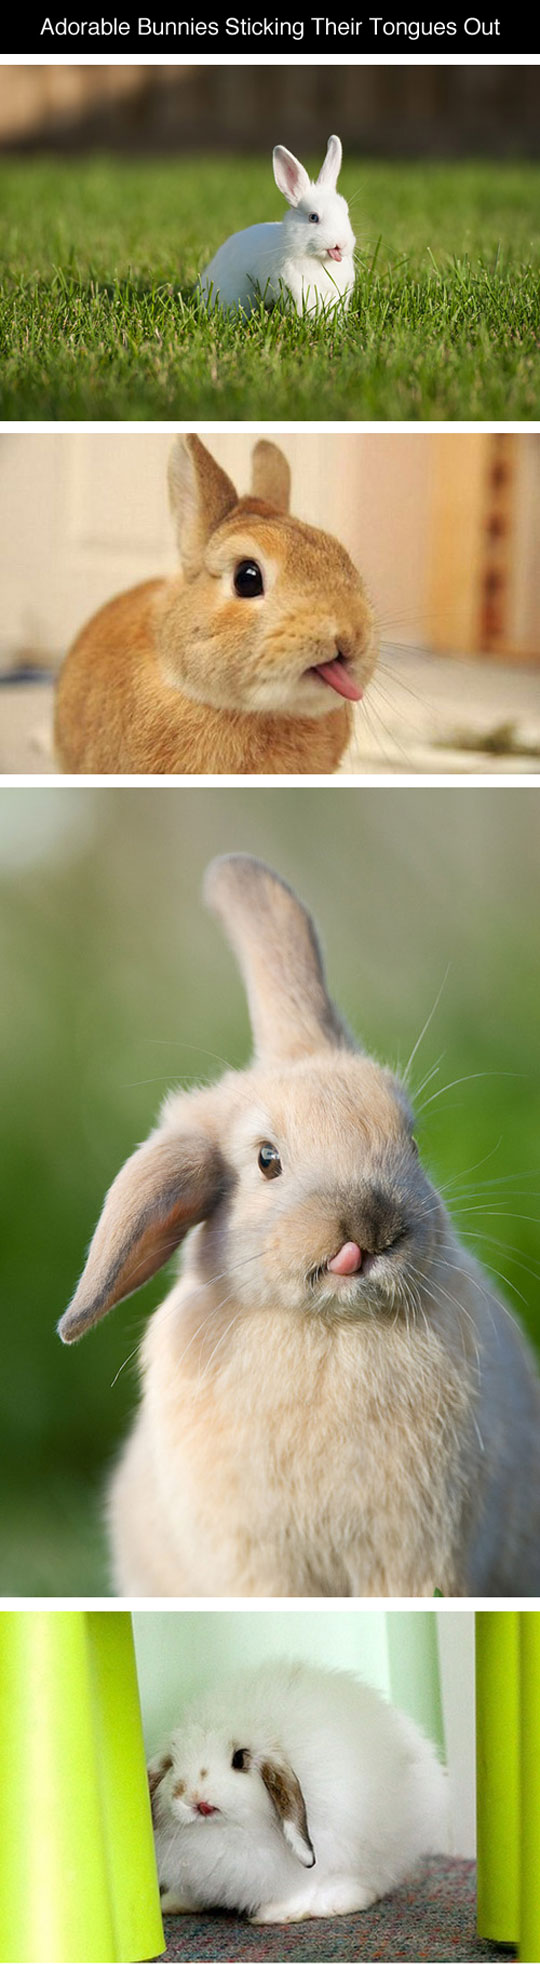 cute-adorable-bunnies-tongue-out